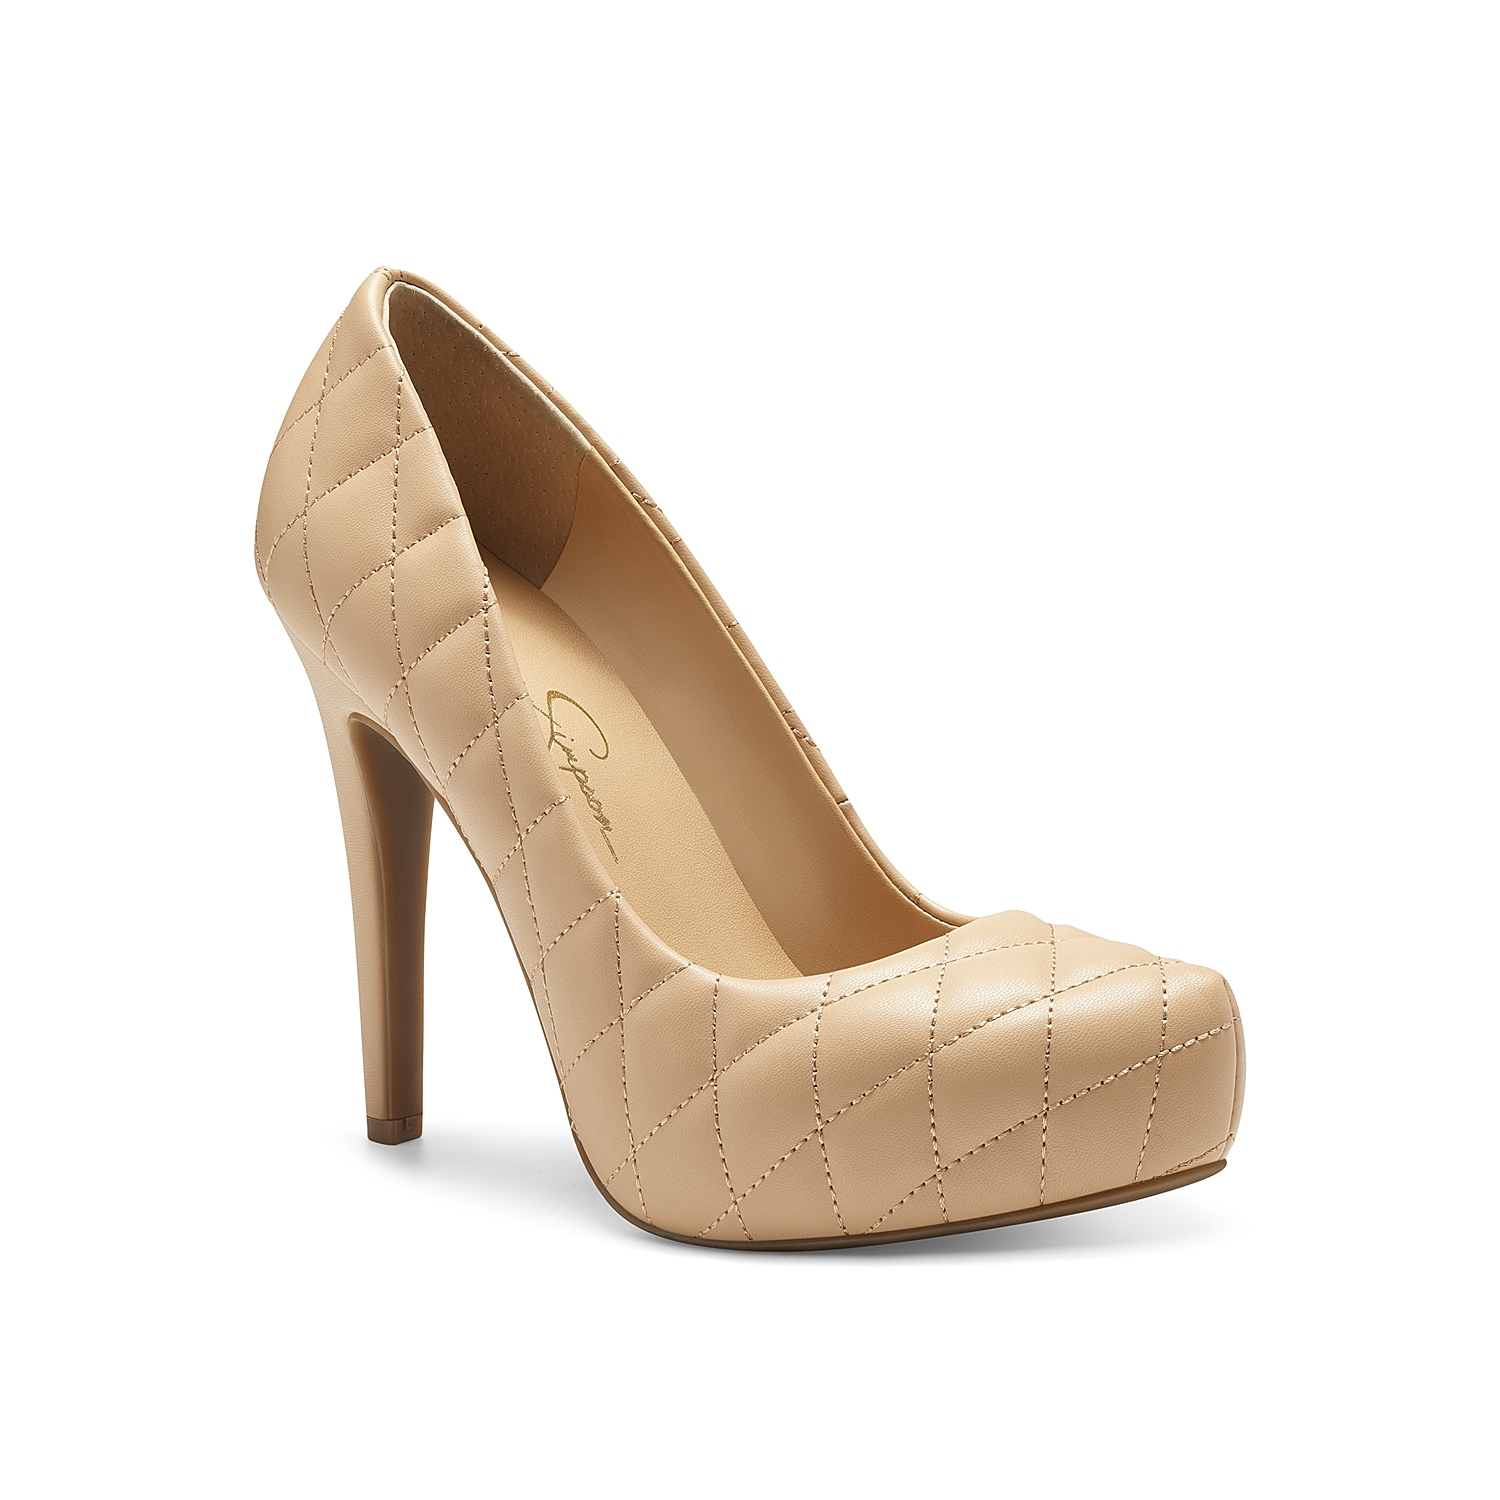 Elegant and versatile, the Parisah platform pump from Jessica Simpson can seamlessly complement most of your outfits. It is designed with quilted patterns that lend a premium feel and covered high heel and platform for added elegance and support.